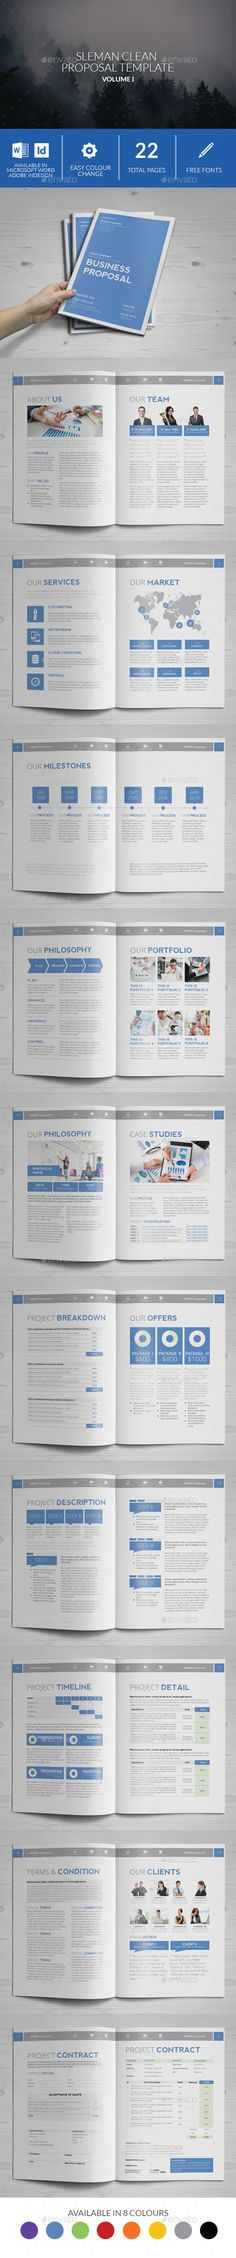 Basic Proposal Template Proposal templates, Cleaning companies - it services proposal template